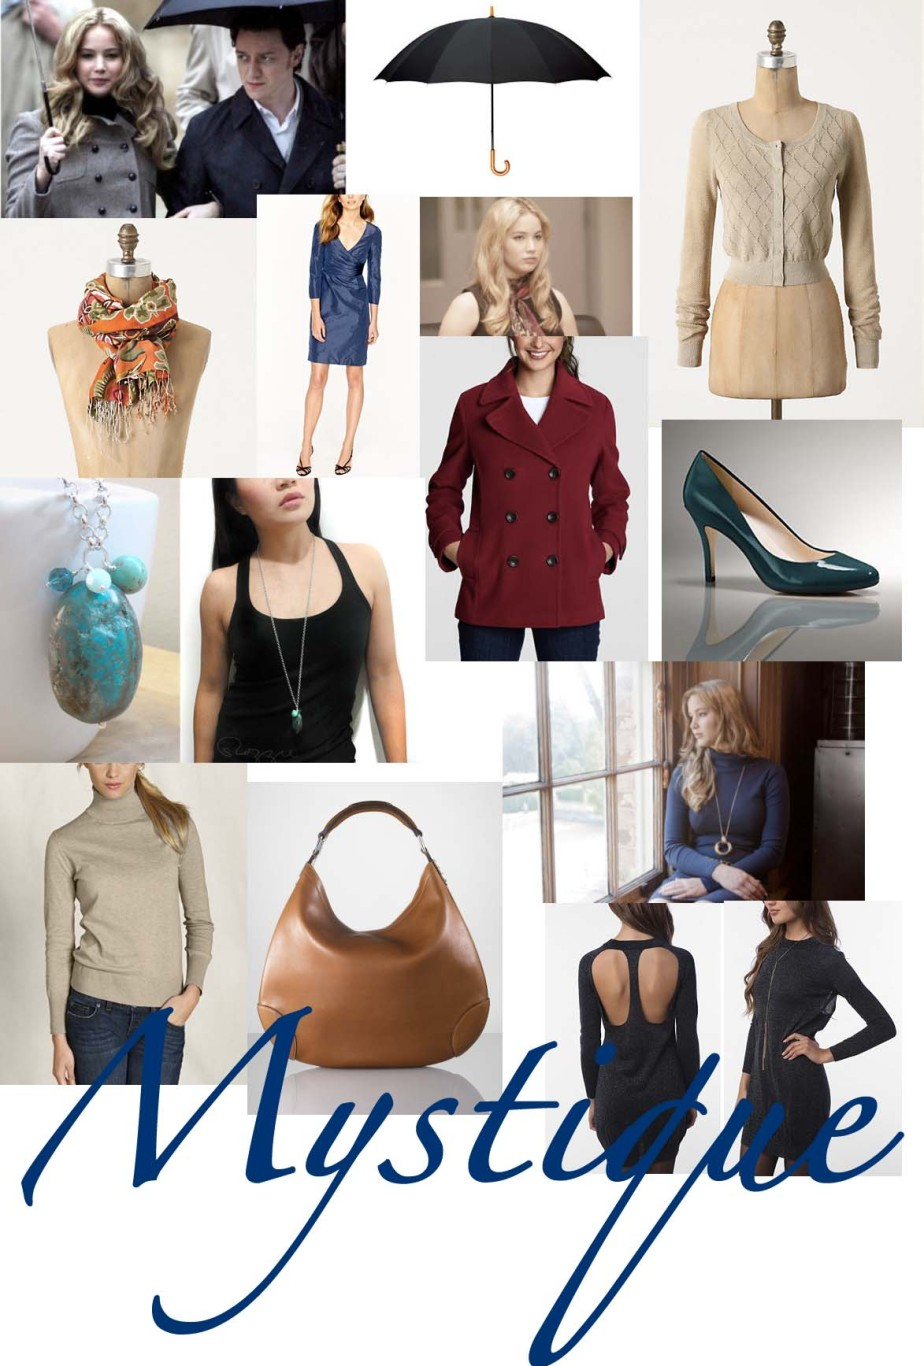 Dress Like a (Female) Superhero: Mystique